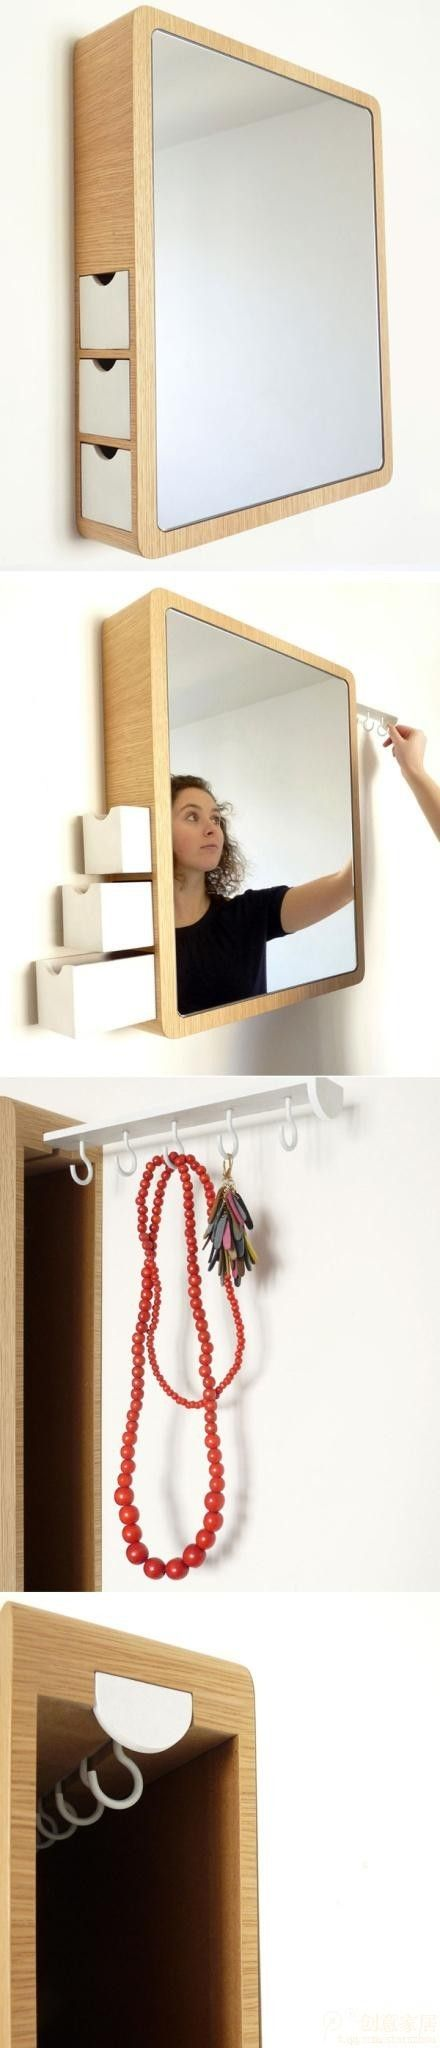 Design by Les M studio, this clever makeup mirror comes with hidden hanger and sliding storage boxs: Small Apartments, Hidden Storage, Bathroom Mirrors, Jewelry Storage, Storage Boxes, Makeup Mirrors, Sliding Storage, Clever Makeup, Hidden Hangers